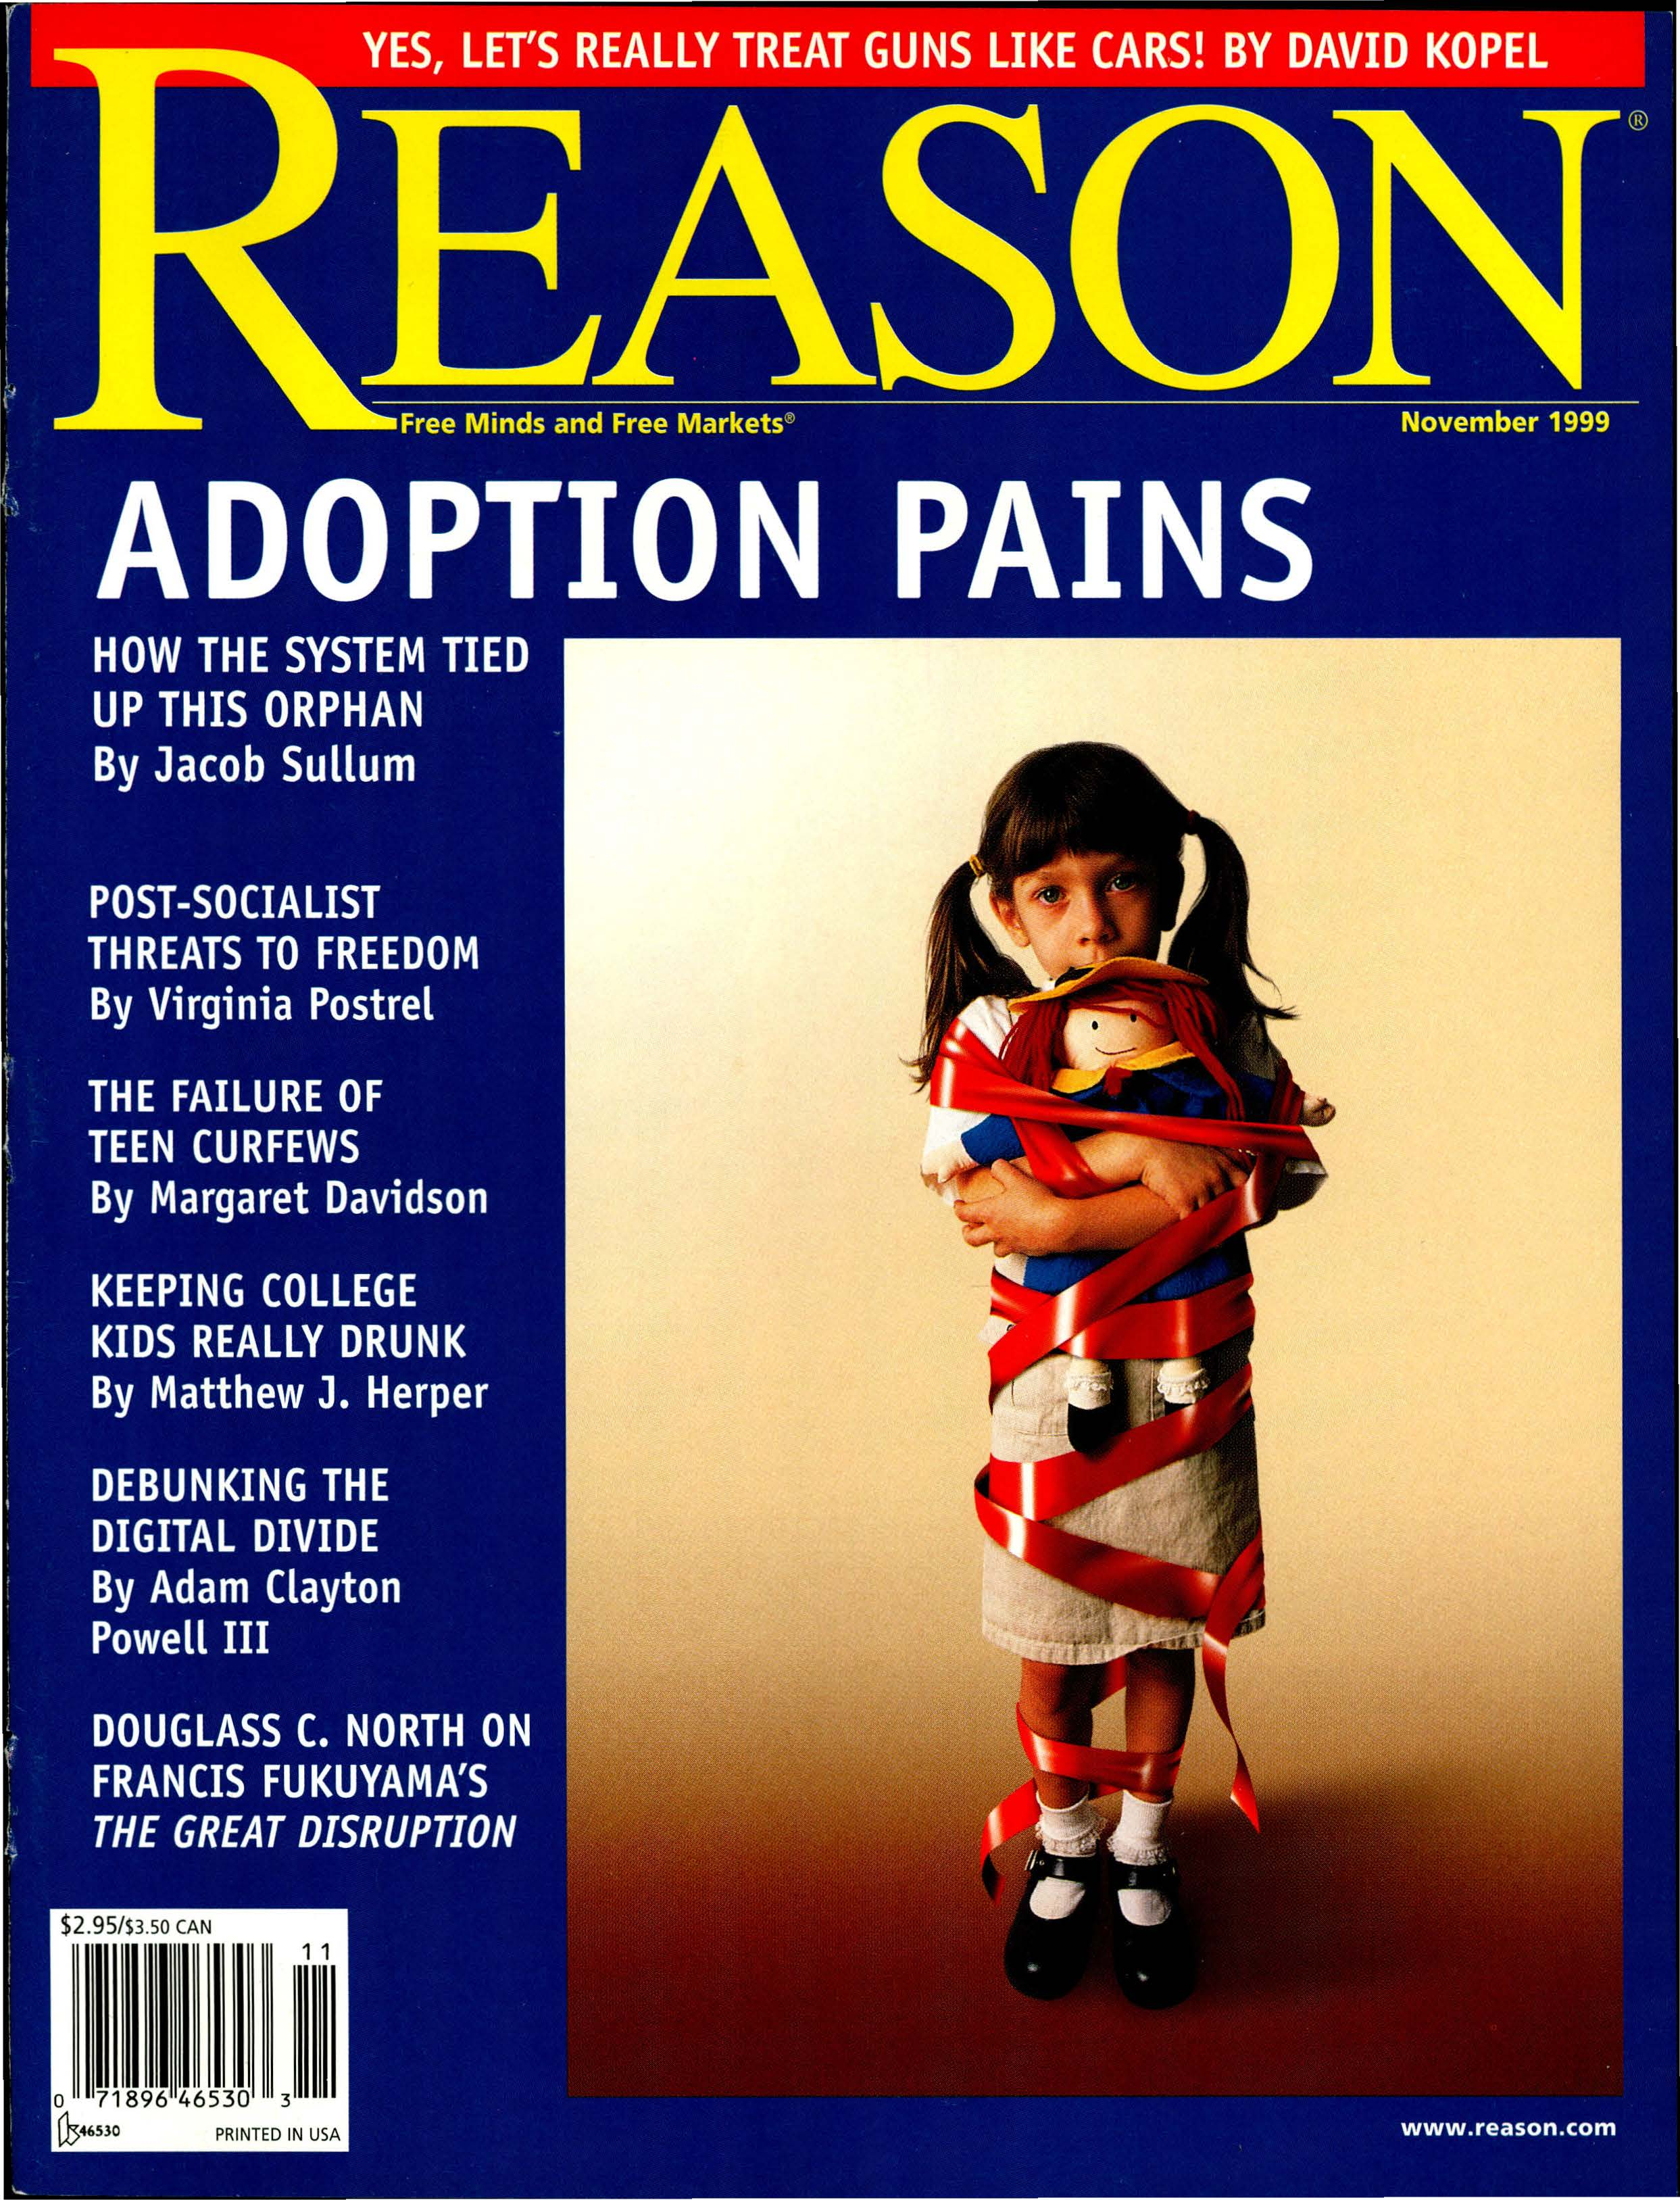 Reason Magazine, November 1999 cover image